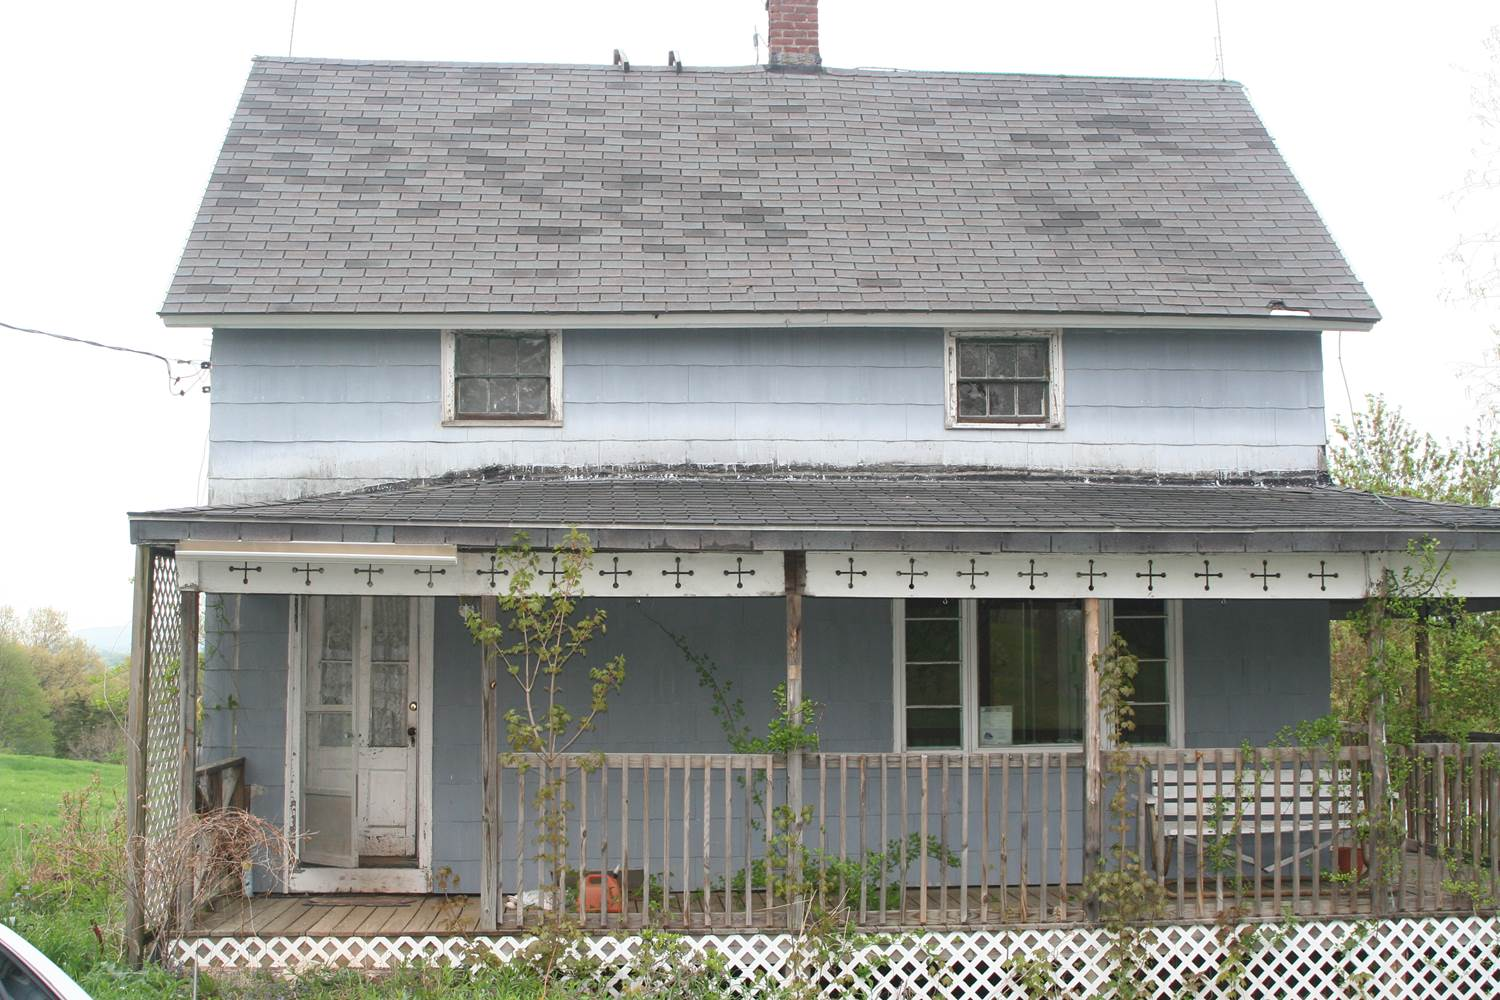 Lead inspections and consulting chem scope inc for Lead paint on exterior of house